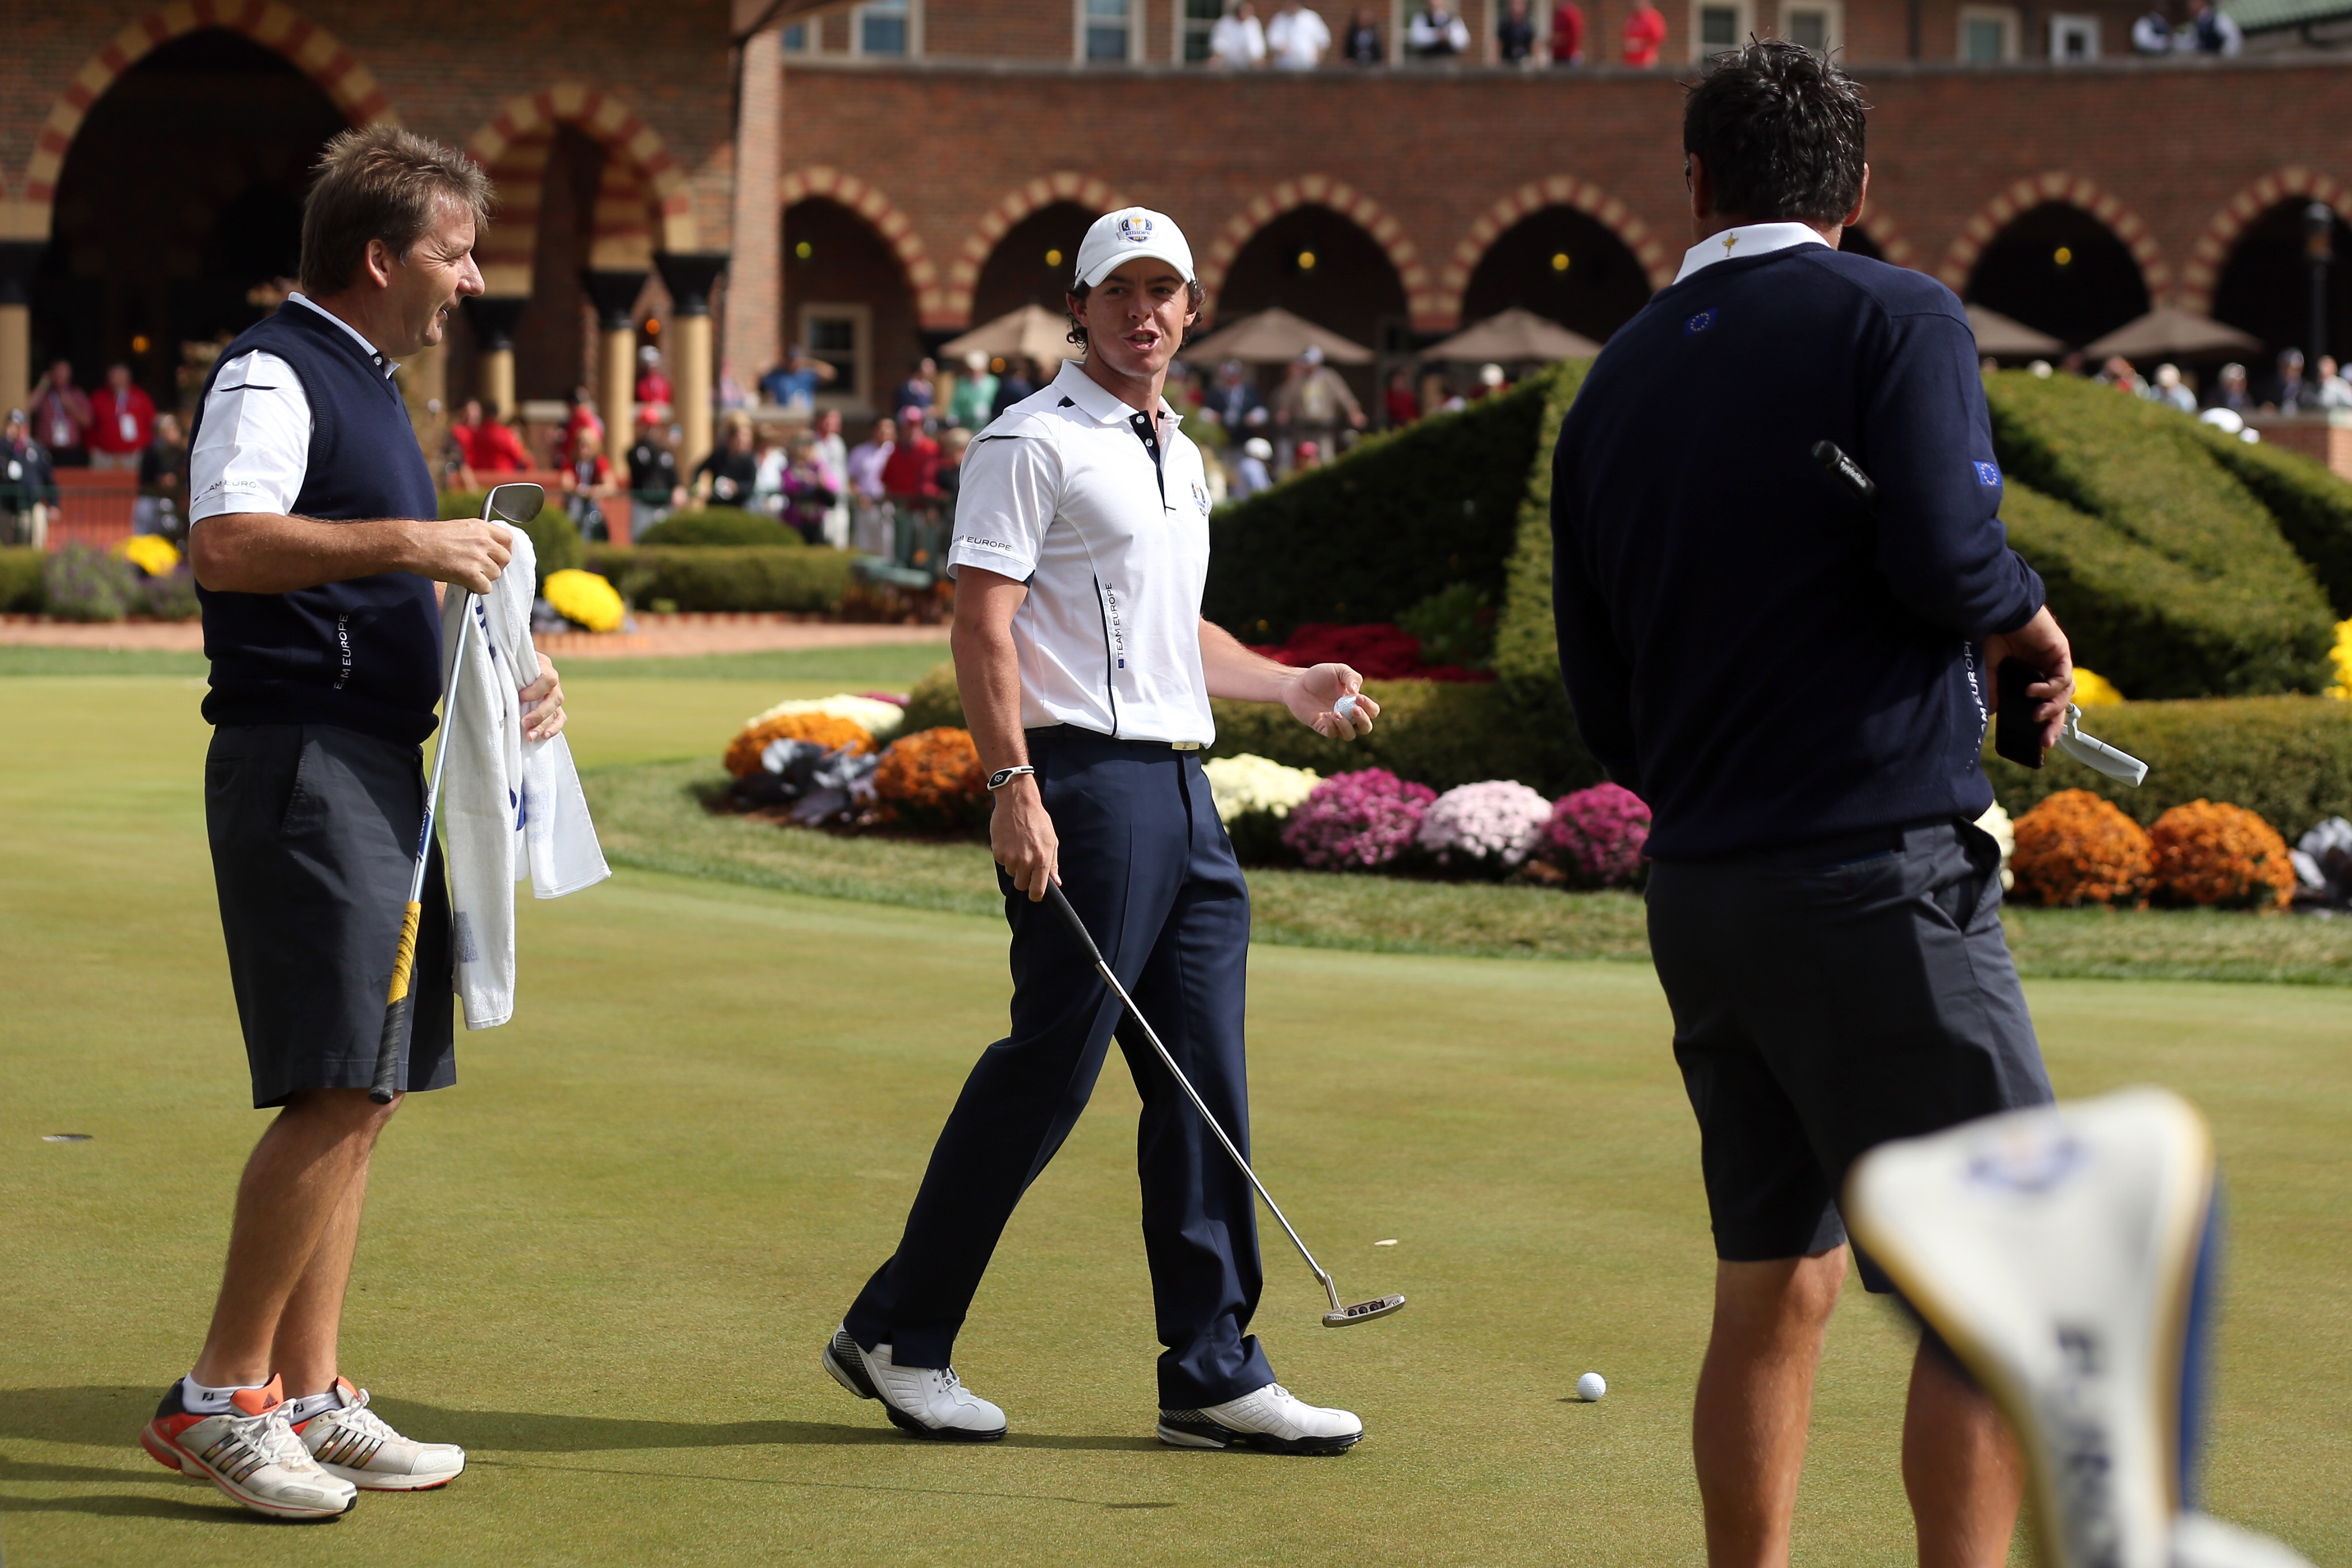 Rory McIlroy waits on the putting green after arriving late to the golf course. (Getty Images)